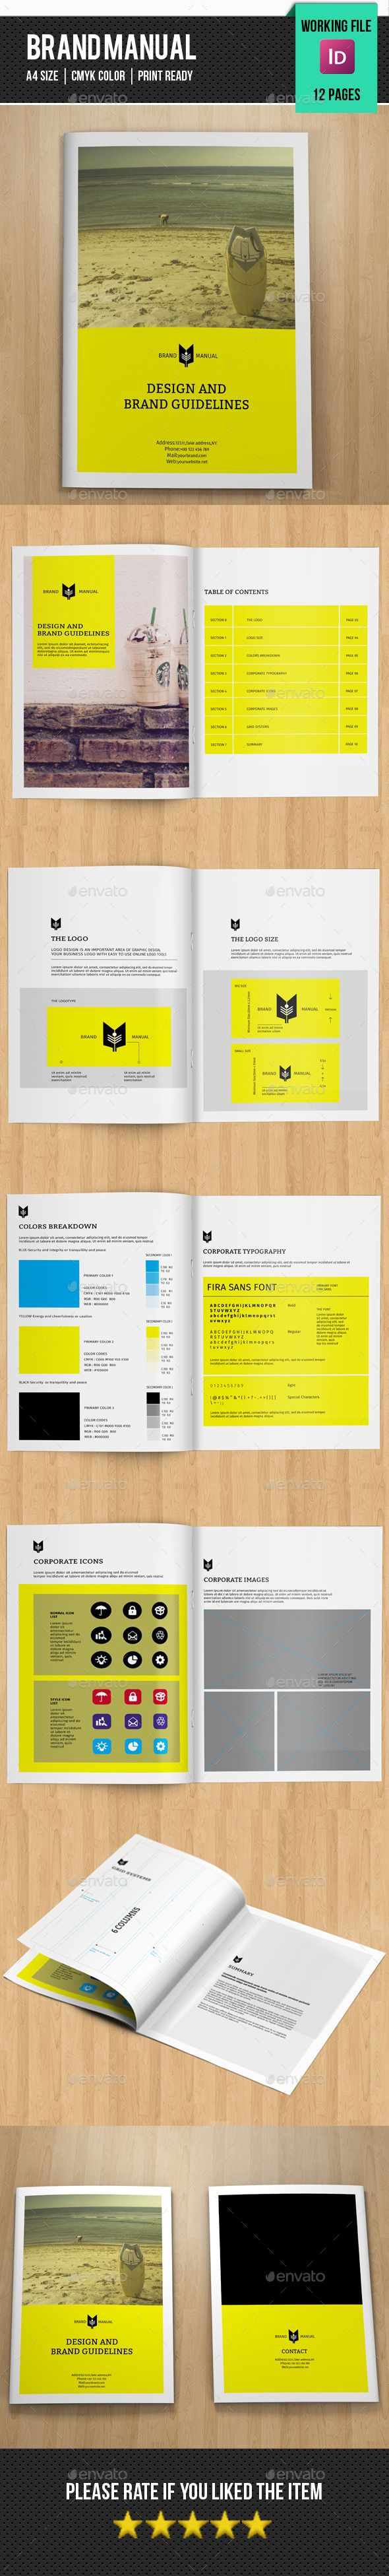 Manual Design Templates Brand Manualv02  Brand Manual Template And Brand Guidelines